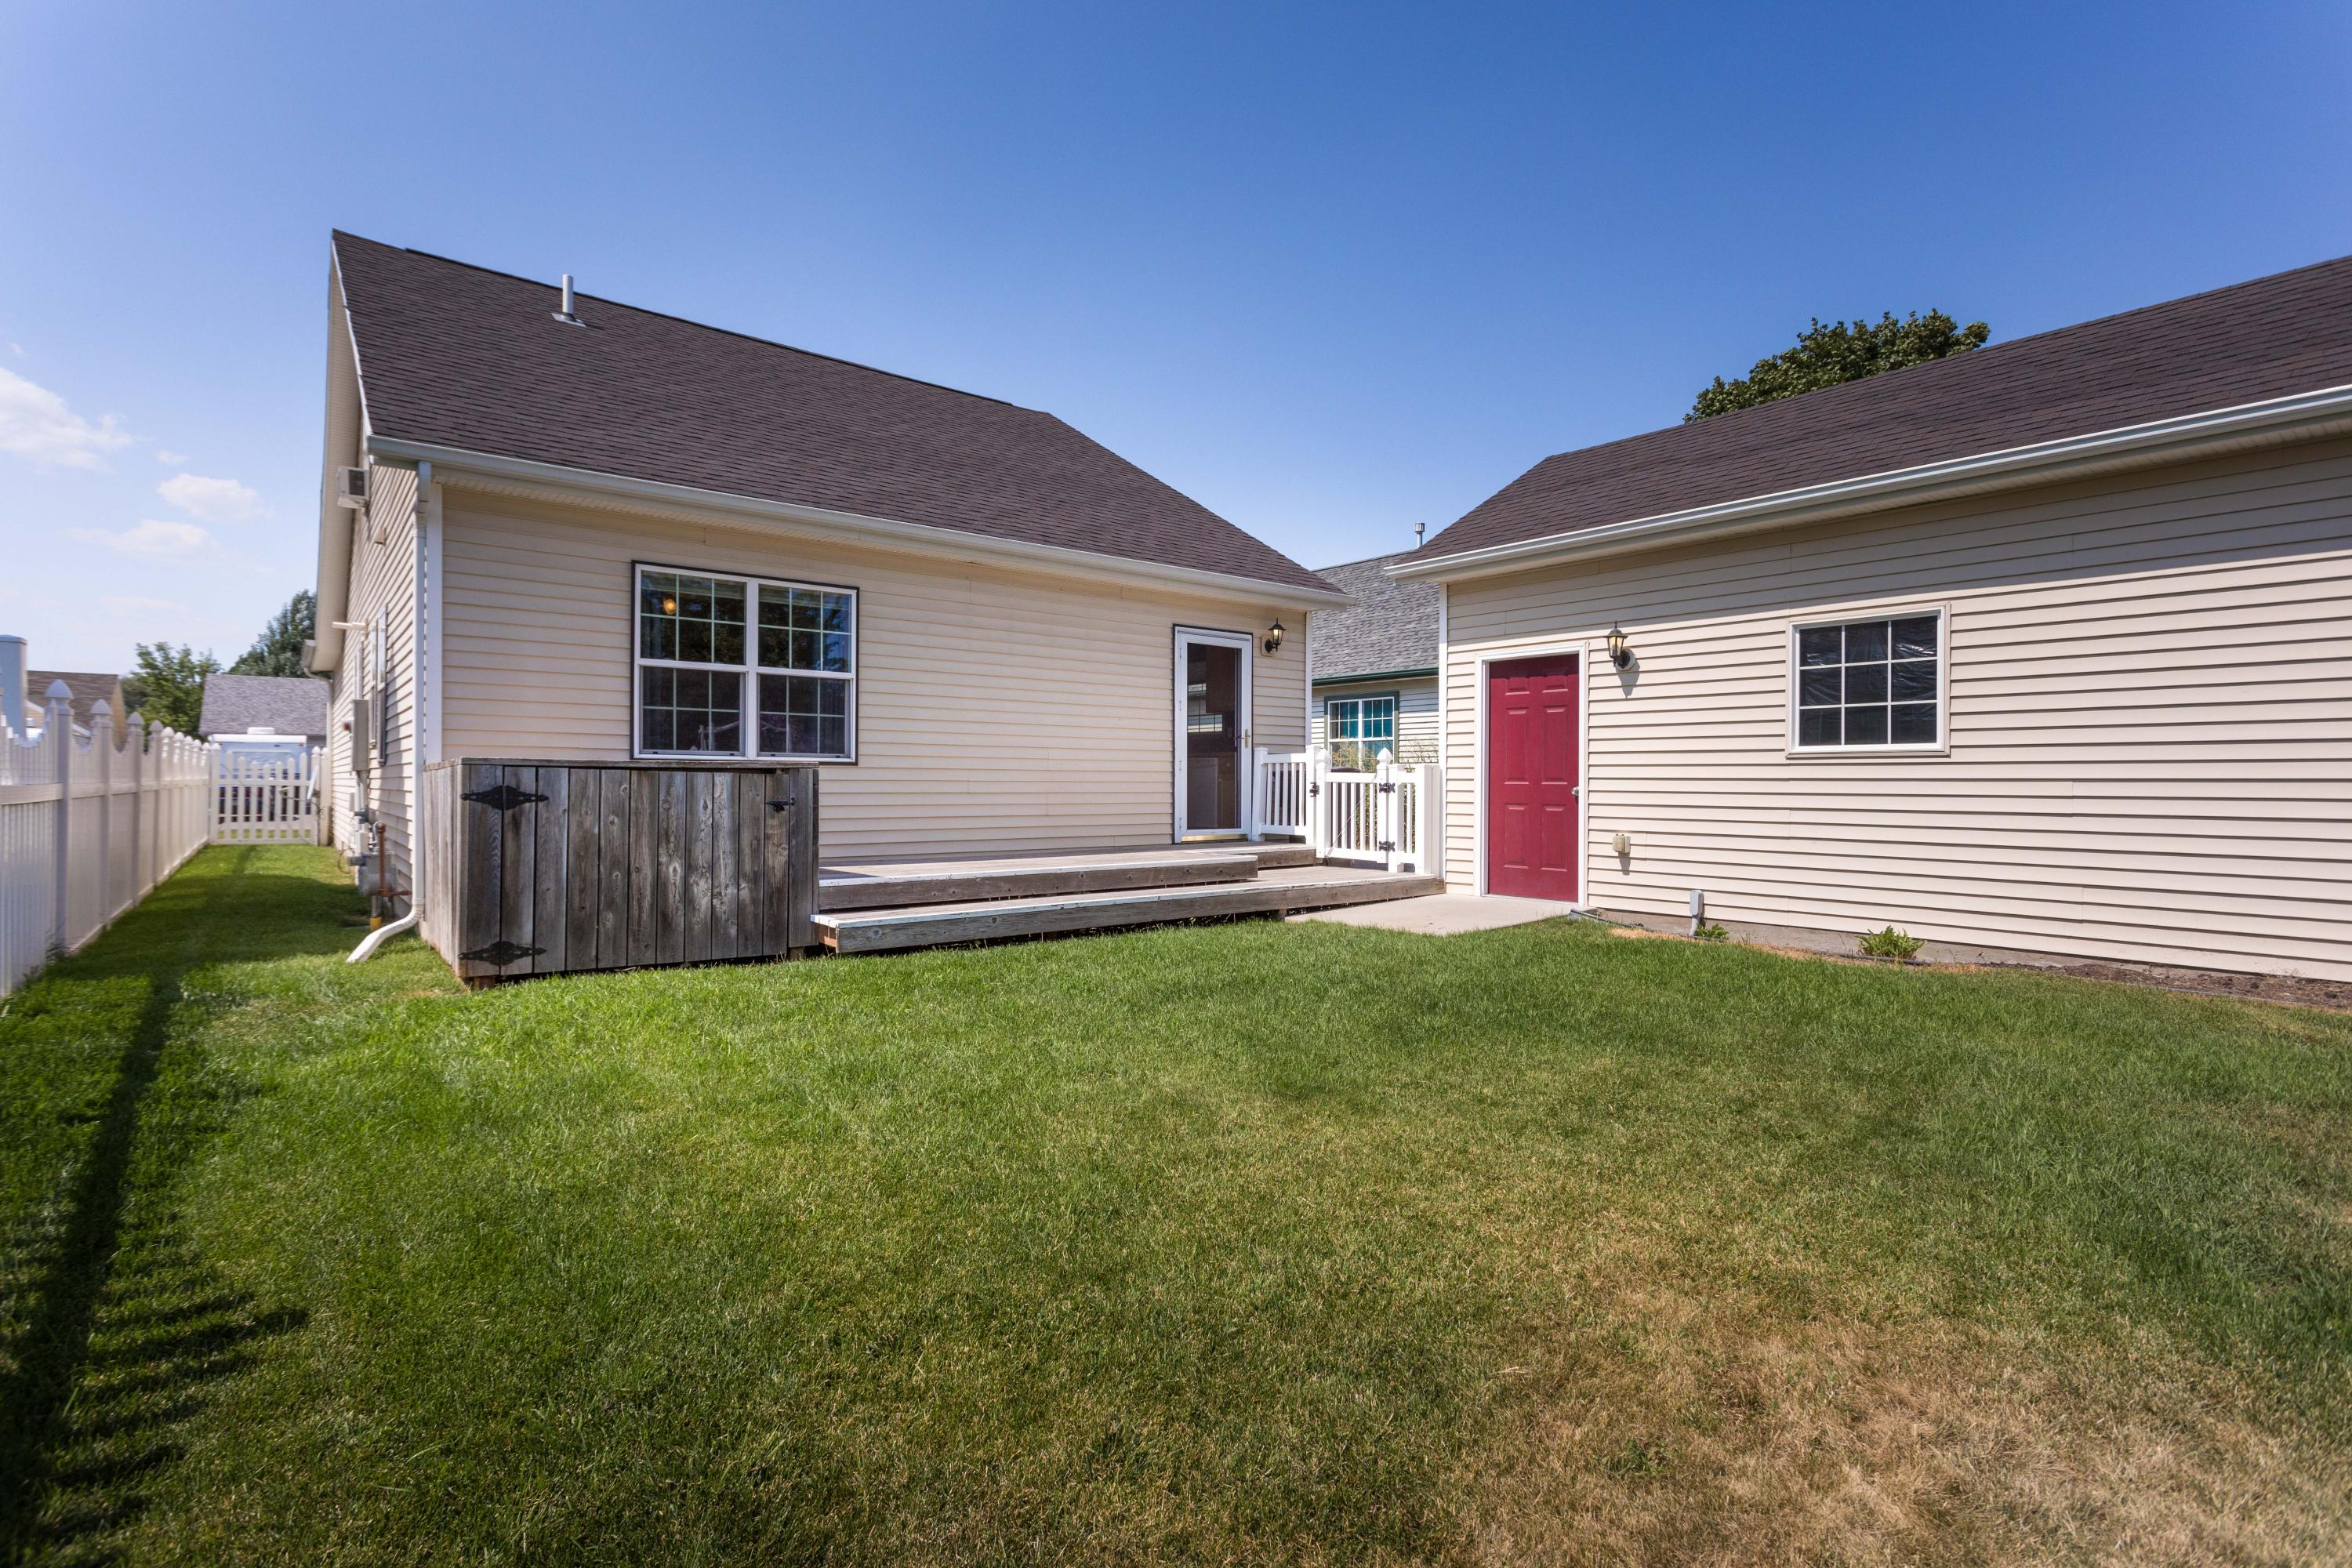 Home for Sale at 235 Cooperative Way in Kalispell, Montana for